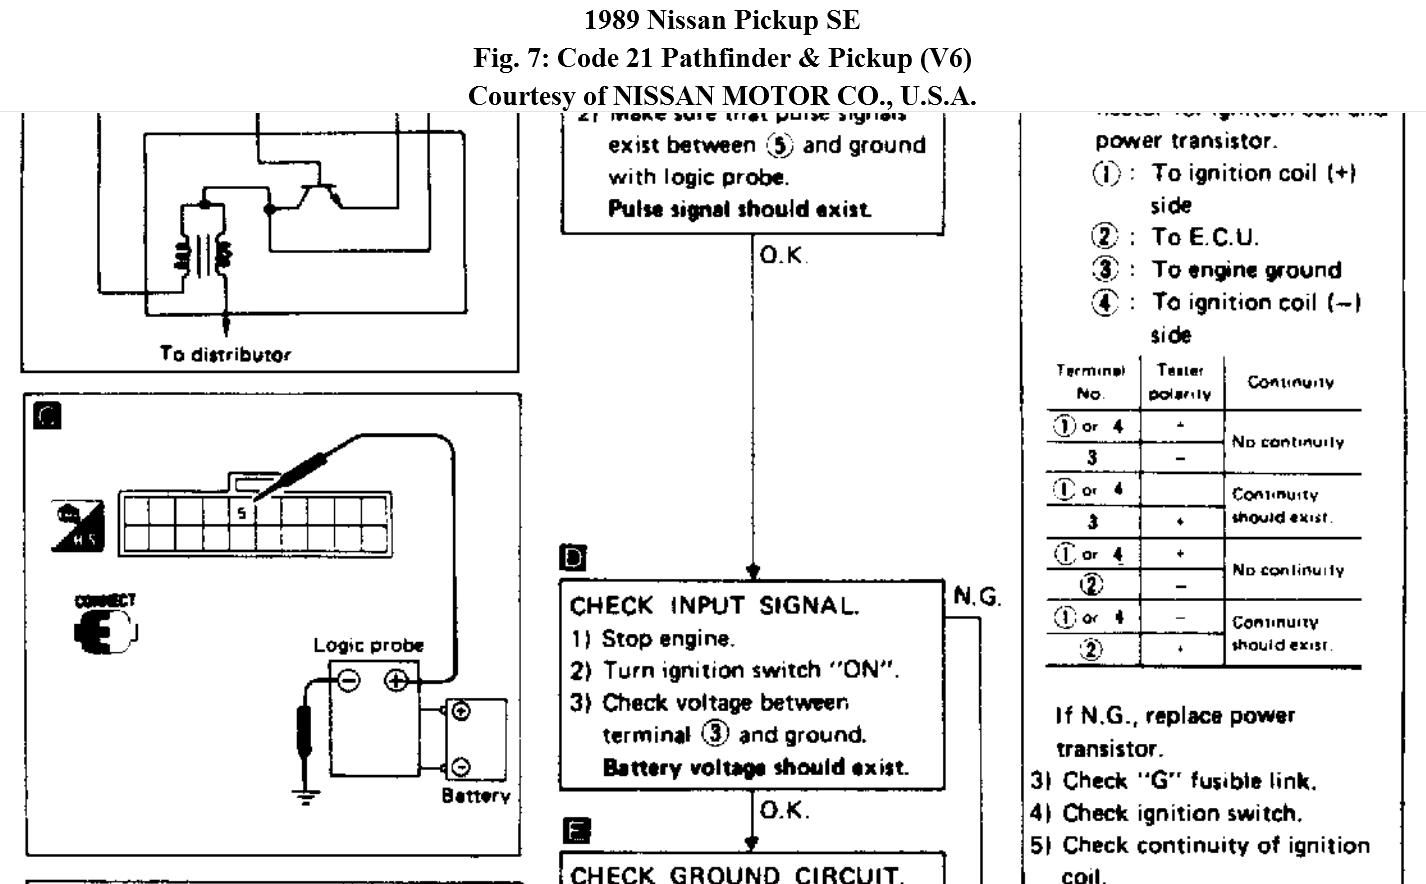 1989 Nissan Pickup Alternator Wiring Diagram : Nissan pickup ignition diagram wiring